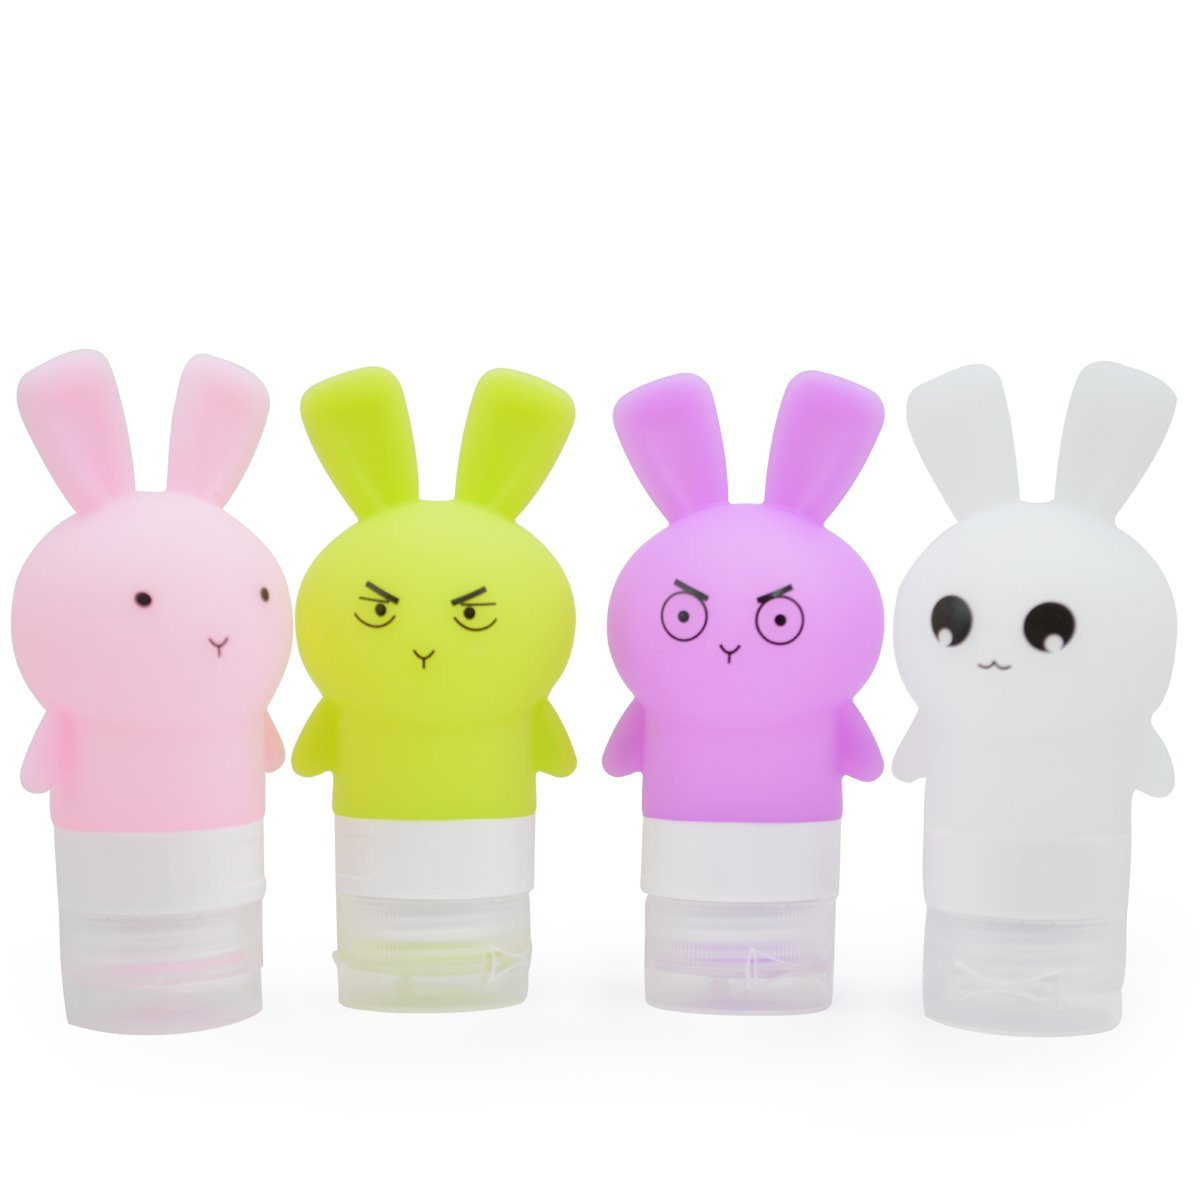 Portable Silicone Travel Bottle Set with Clear Bag, Soft Toiletry Bottles Refillable Squeezable Shampoo Lotion Liquid Container Kit, Cute Rabbit Beach Travel Accessories TSA Approved 2.5OZ-4Pack